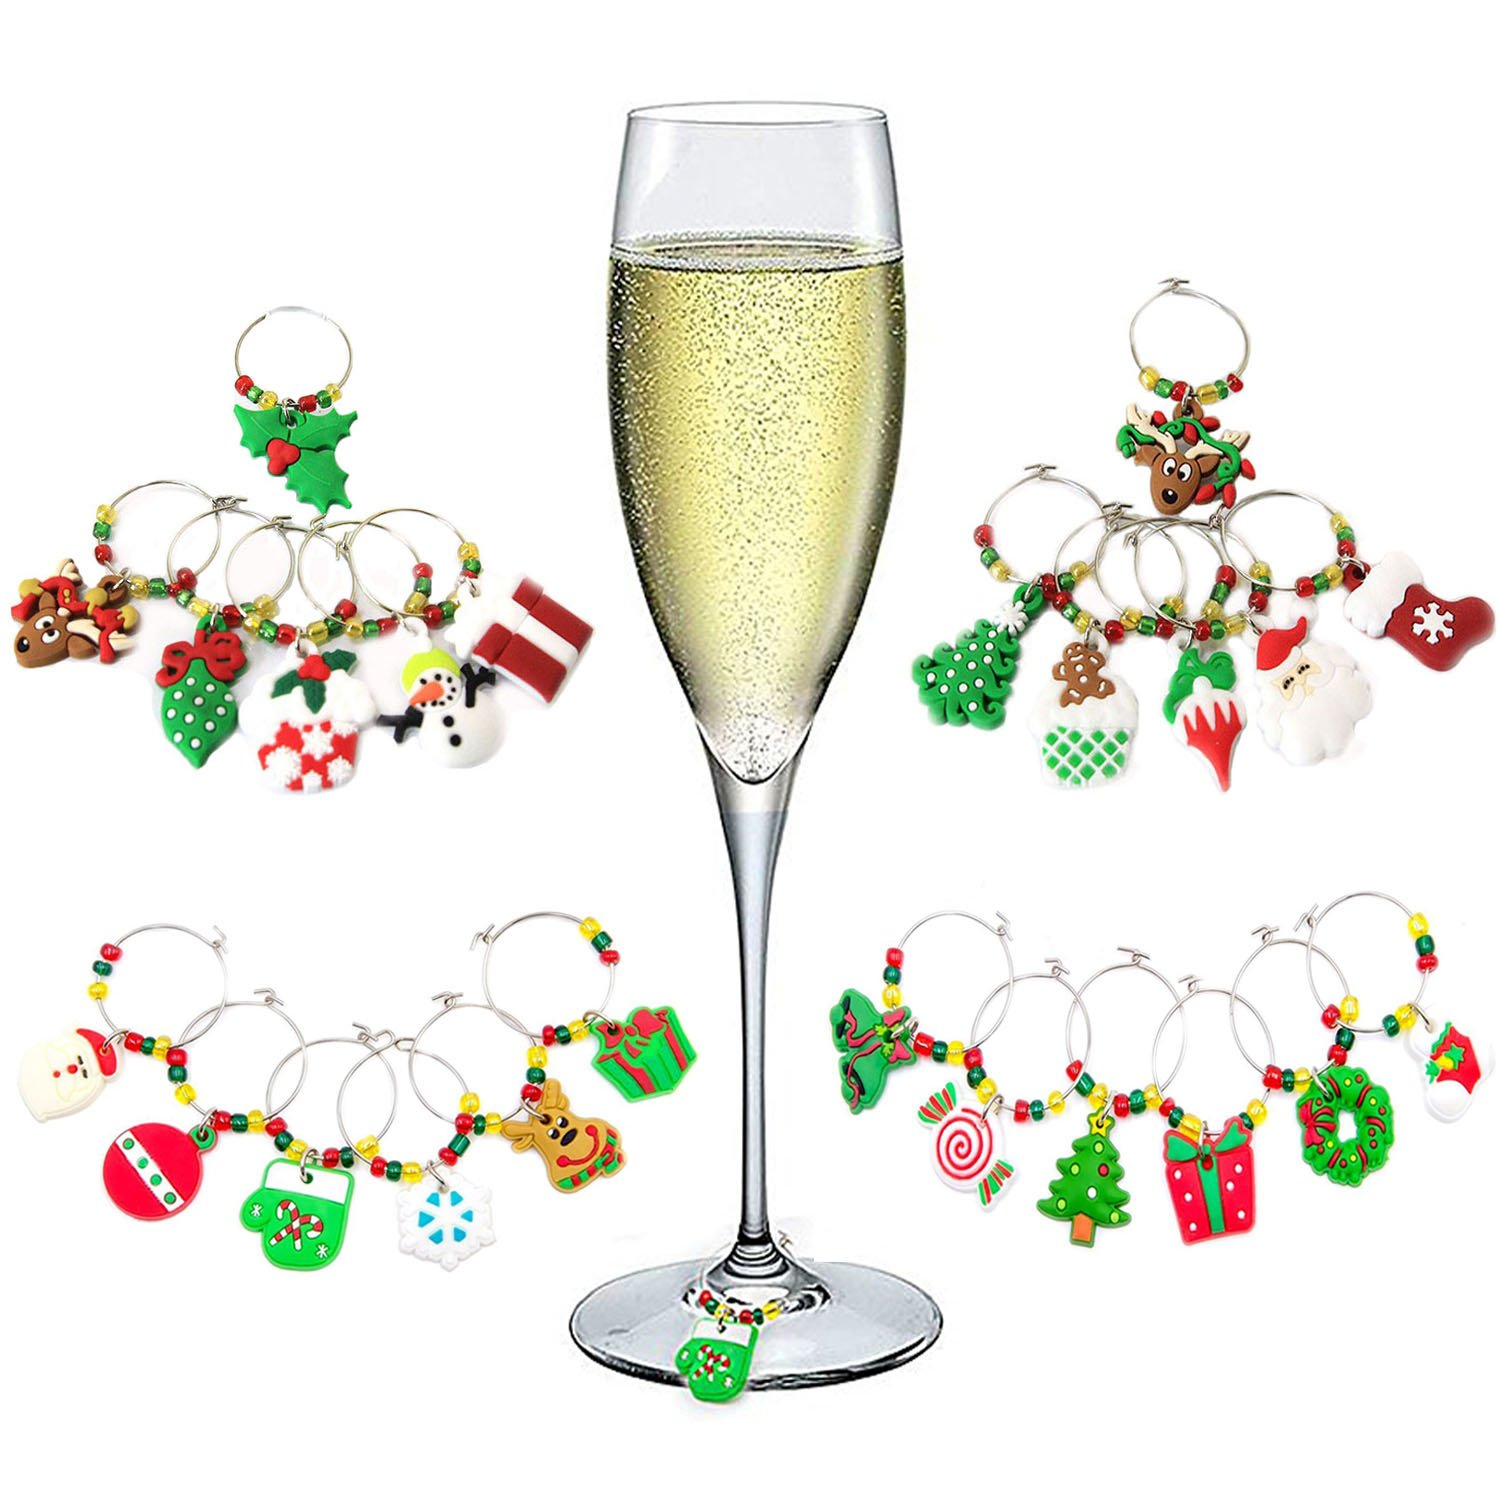 Hraindrop 24-Pieces Wine Glass Charms - Christmas Themed Wine Glass Markers, Wine Glass Tags, Drink Markers, Wine Favors, Assorted Colors